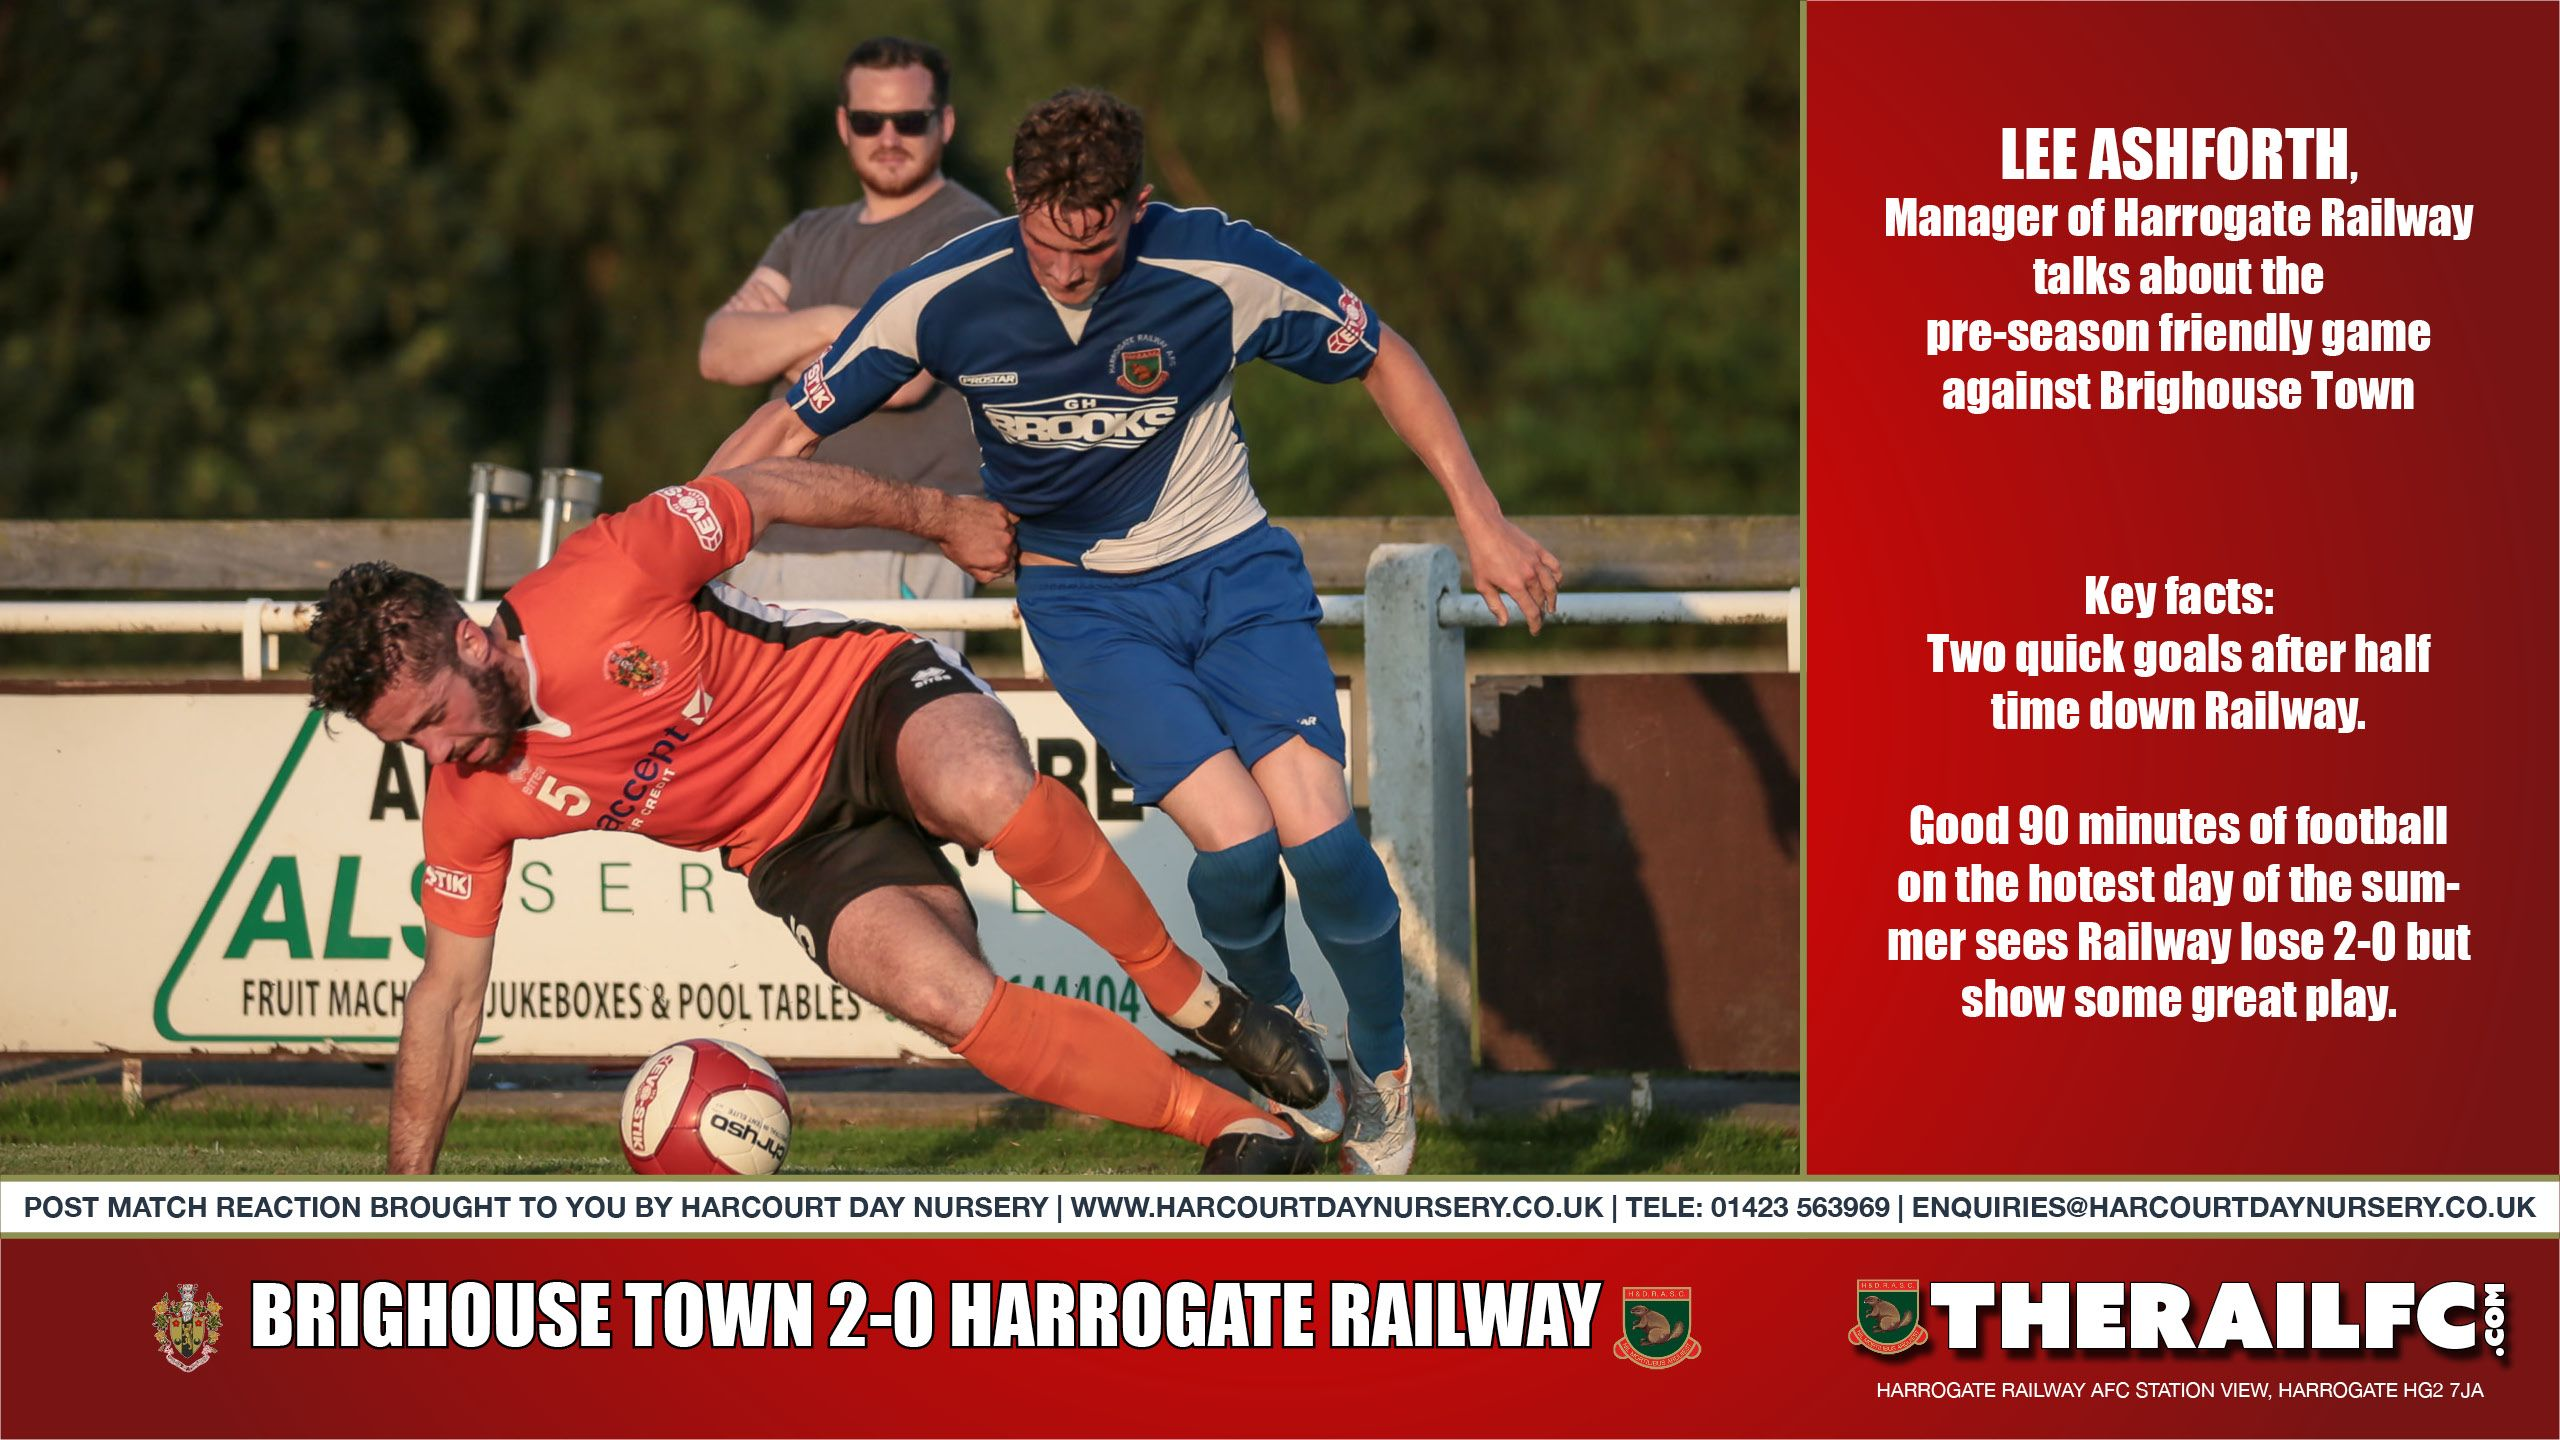 Brighouse Town Post Match Reaction (audio) https